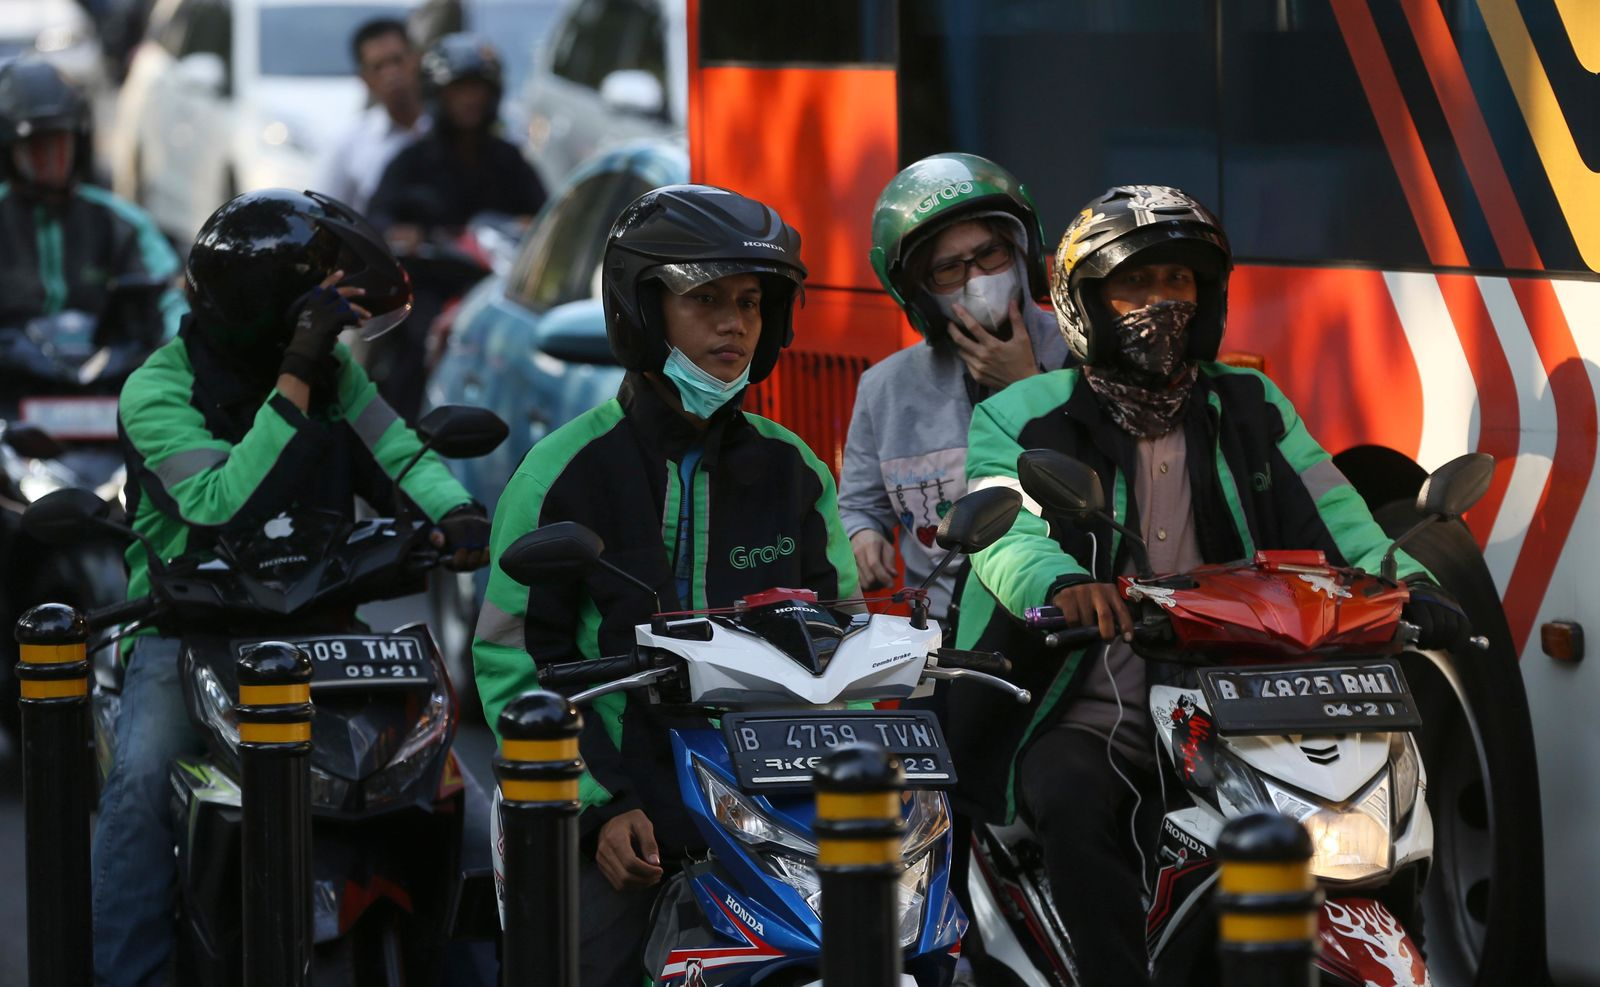 Grab driver sitting on their motorcycles wait for passengers in Jakarta, Indonesia, Monday, July 29, 2019. Japanese technology company Softbank and Southeast Asian ride hailing app Grab said Monday, July 29, 2019, they're investing $2 billion in Indonesia over the next five years. (AP Photo/Achmad Ibrahim)